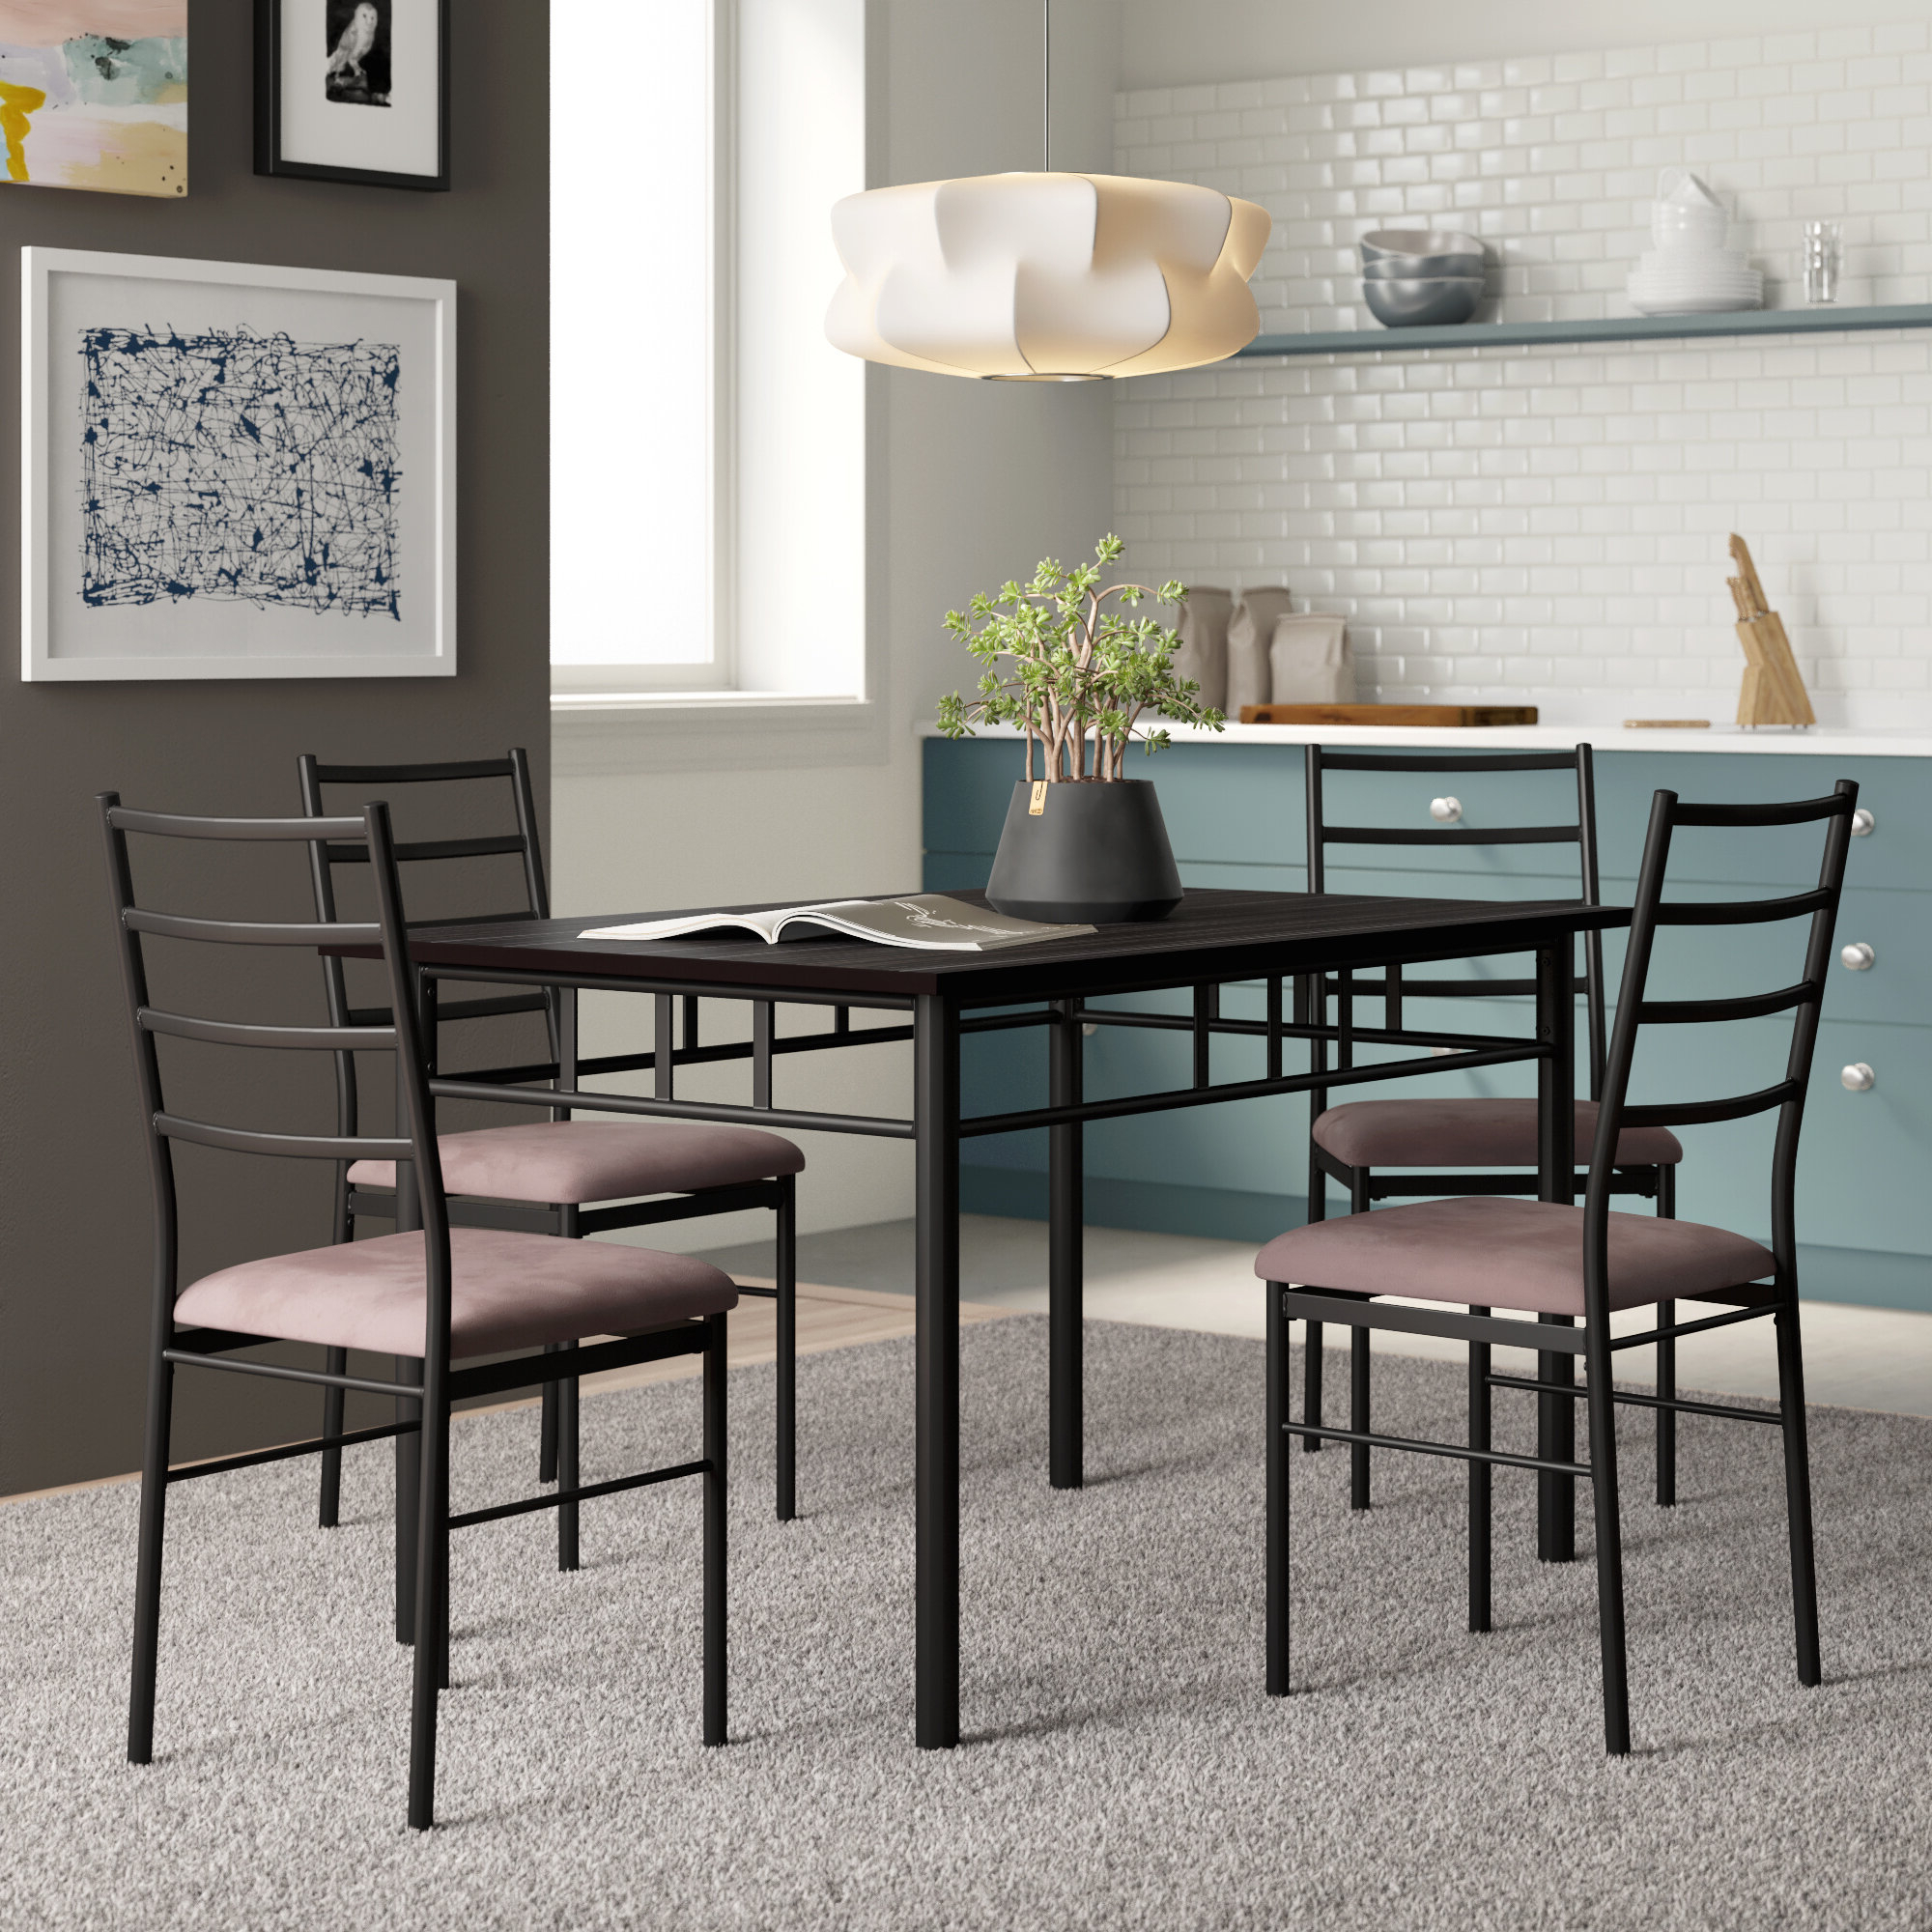 Kieffer 5 Piece Dining Sets Throughout Most Recent Zipcode Design Jarrod 5 Piece Dining Set & Reviews (View 13 of 25)